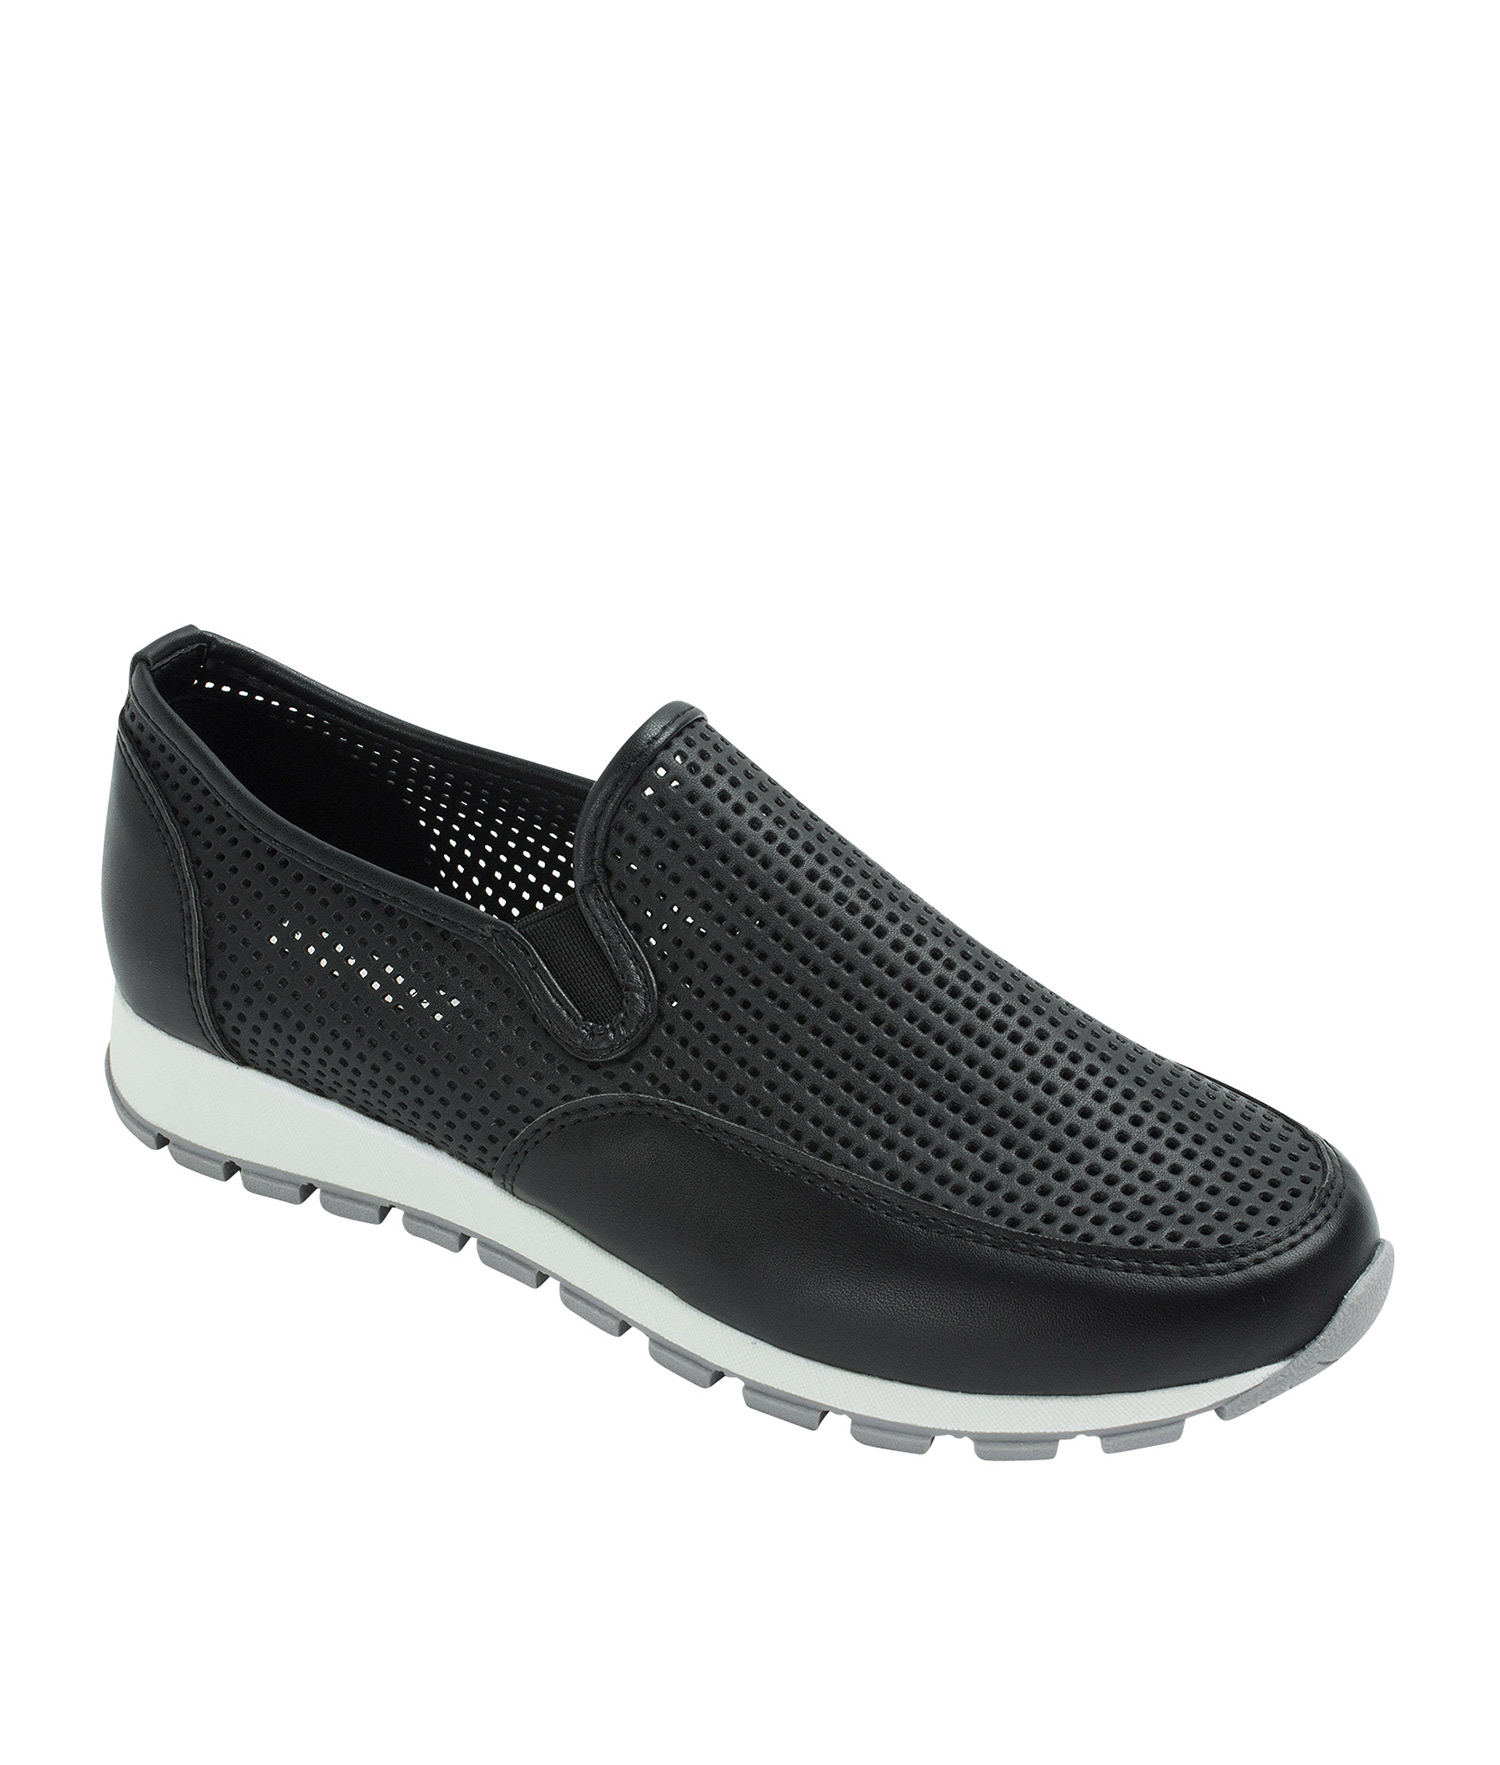 AnnaKastle Womens Perforated Slip-On Sneakers Black